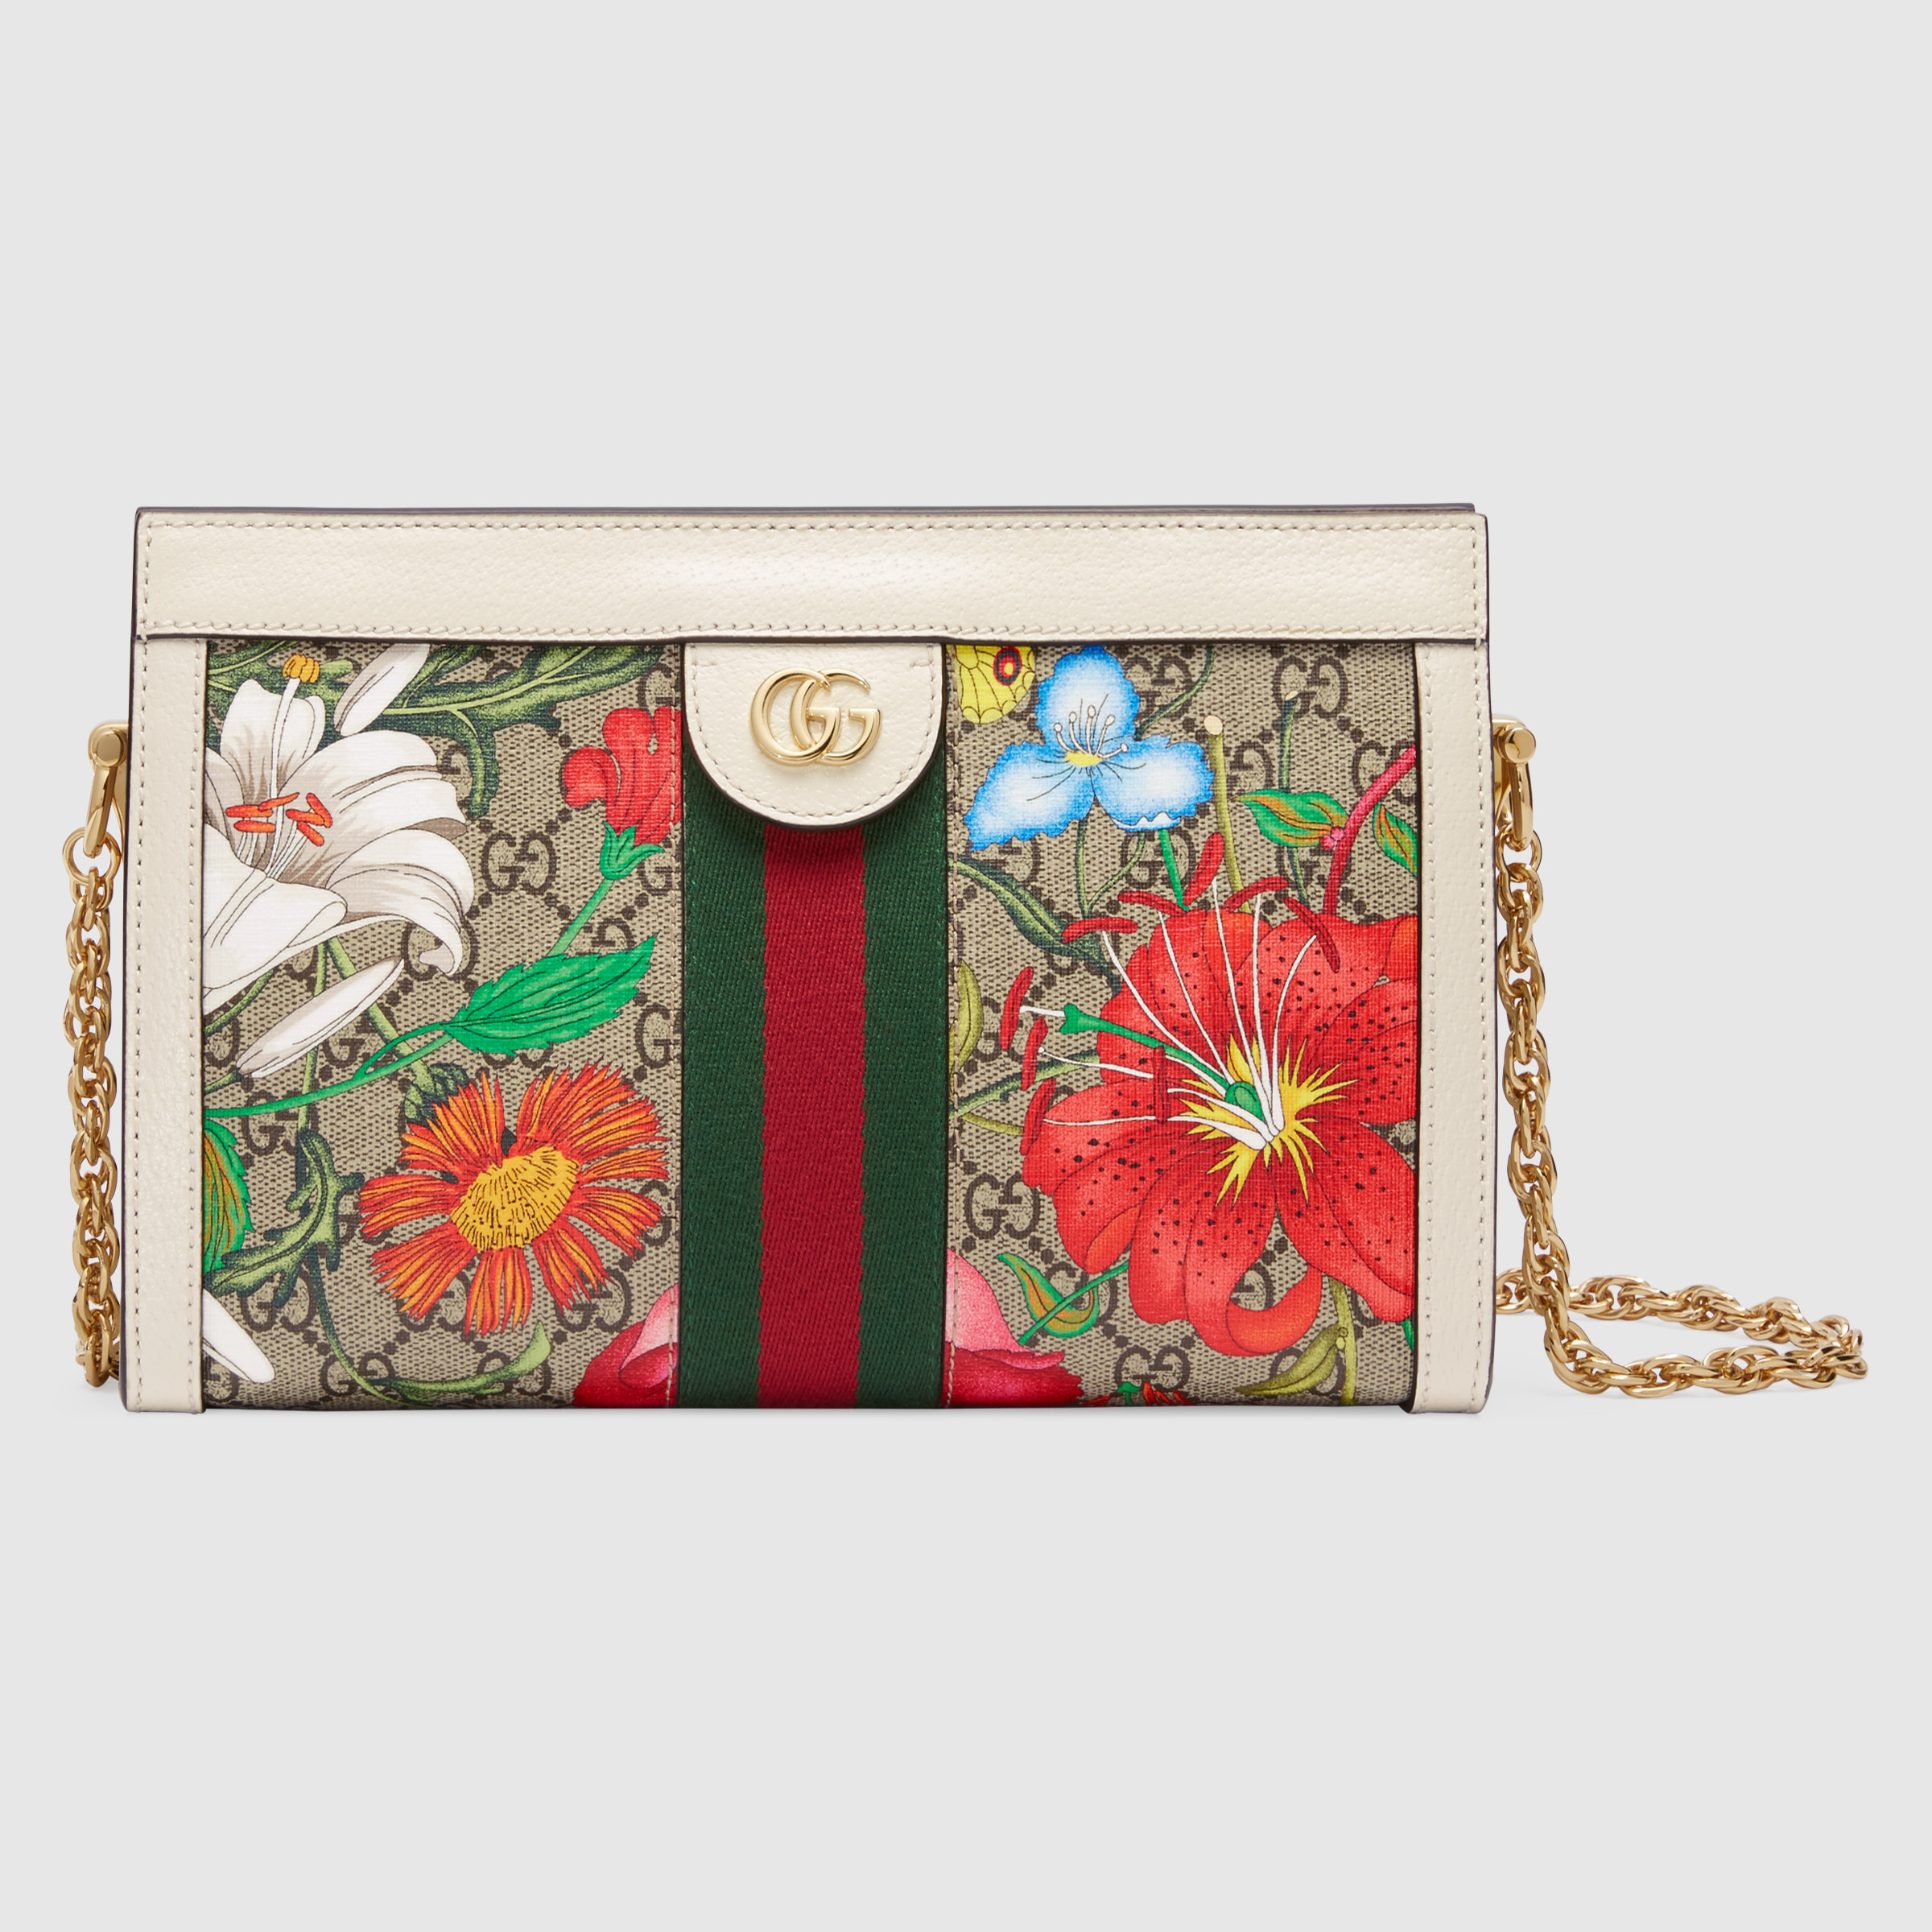 Gucci Ophidia GG Flora Small Shoulder Bag 503877 White Leather